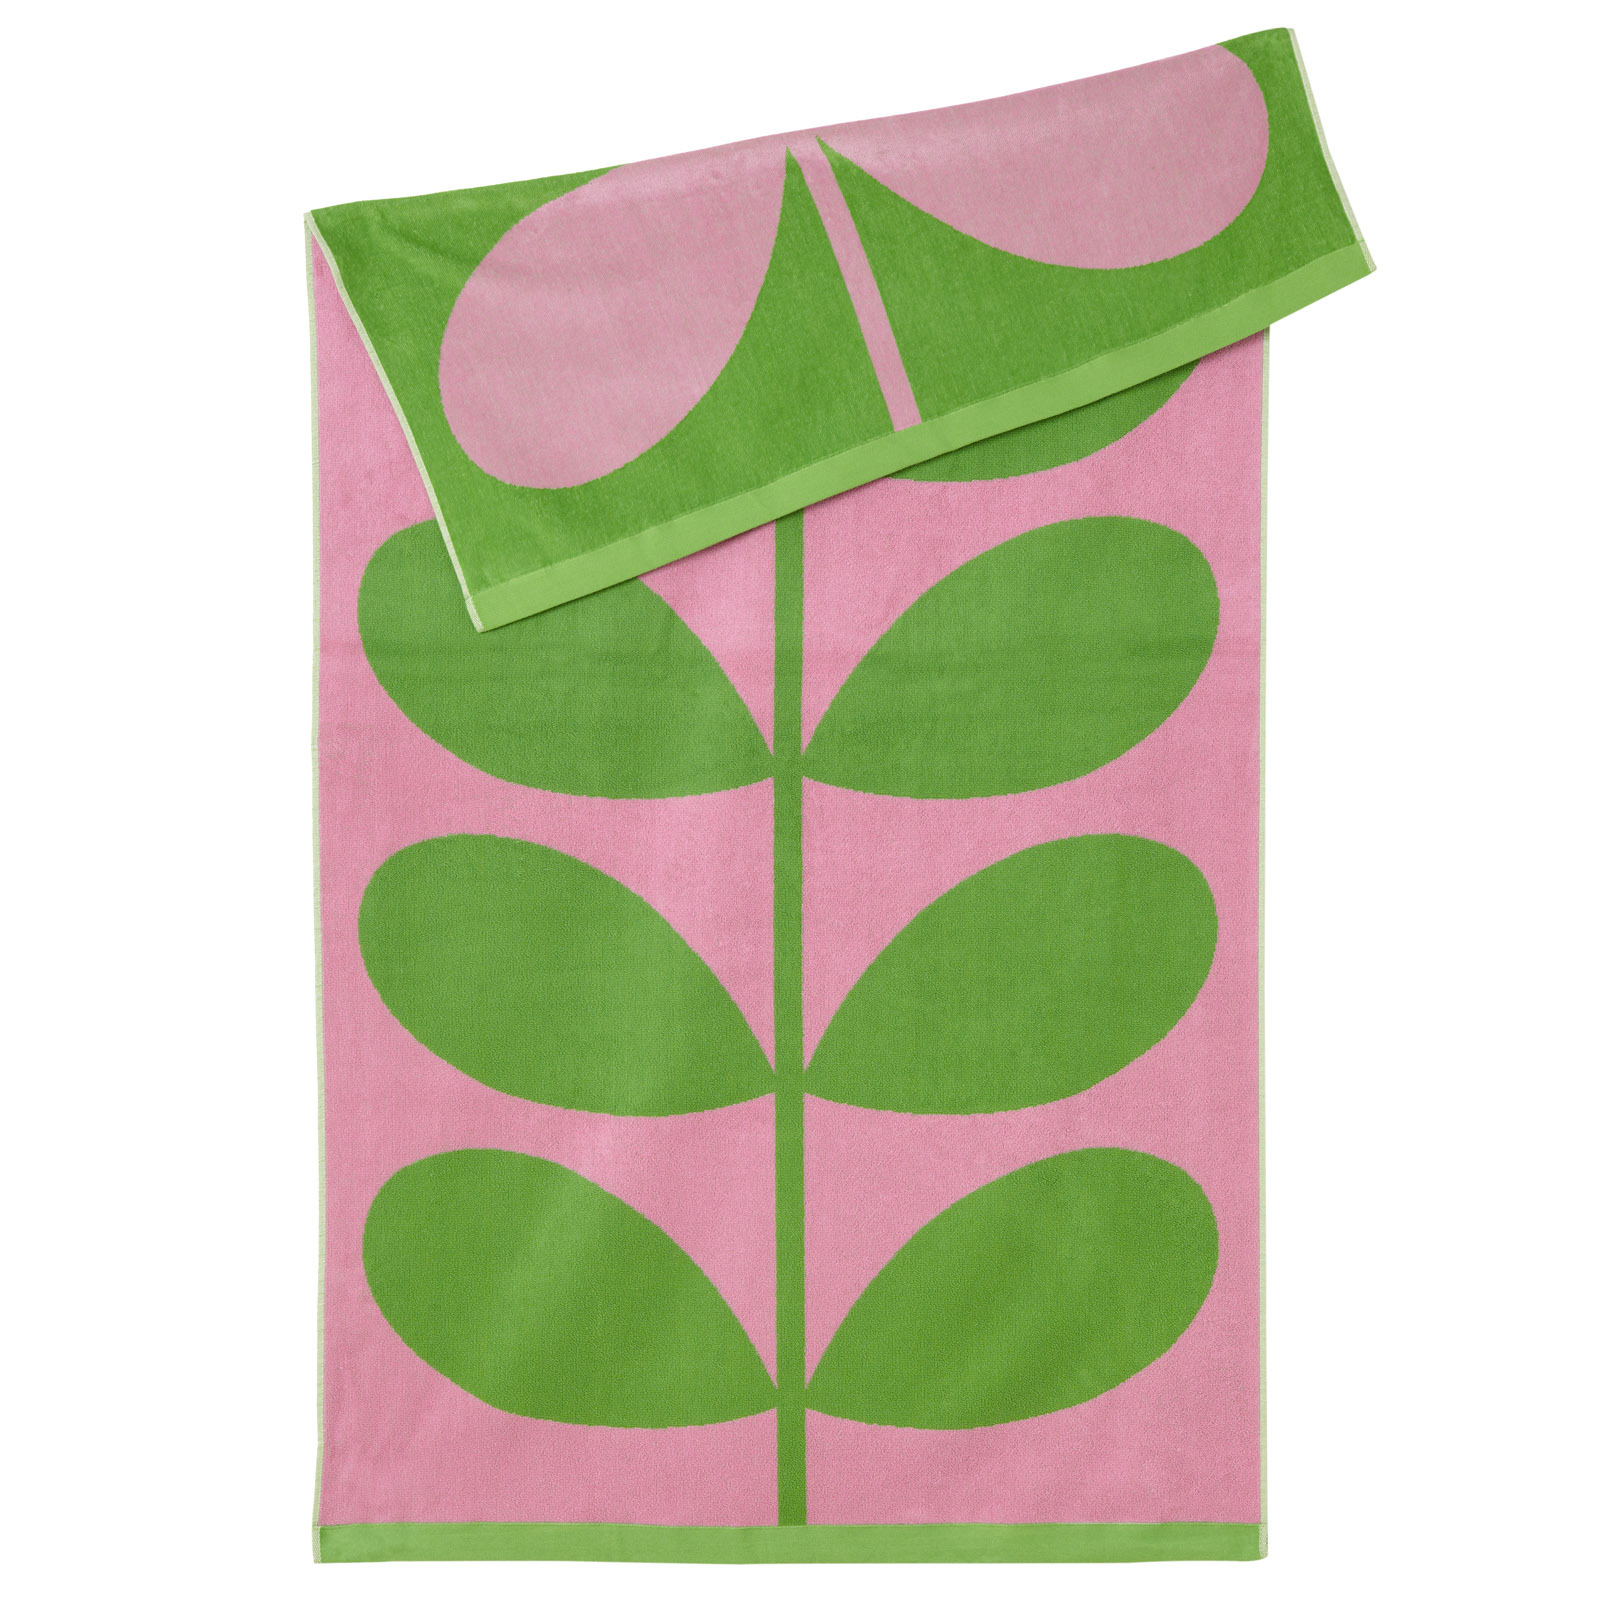 Orla Kiely Luxury Beach Towel - Lilac Pink Stem image